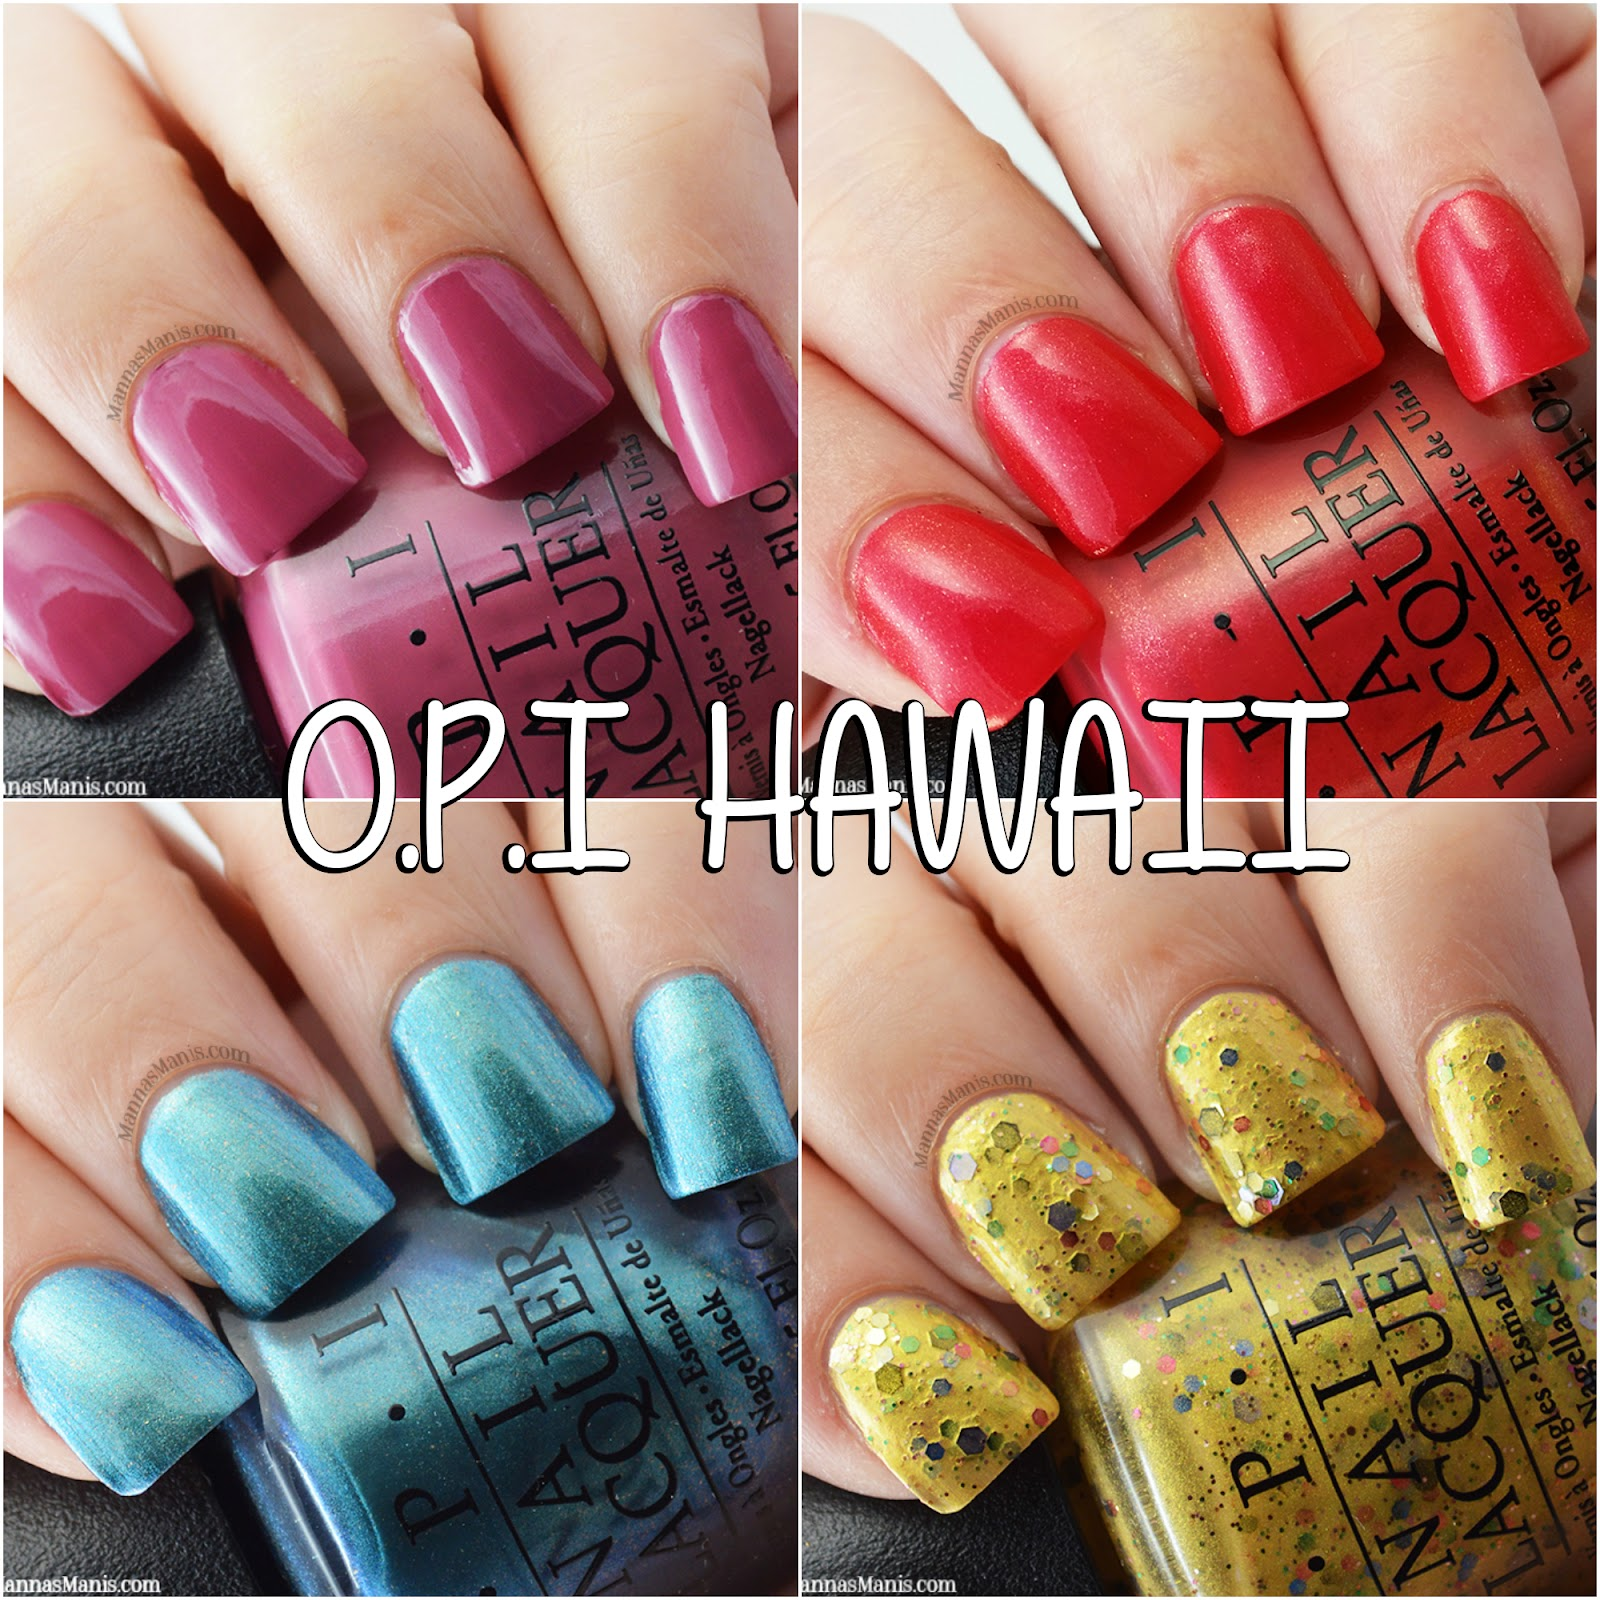 OPI Hawaii Collection swatches